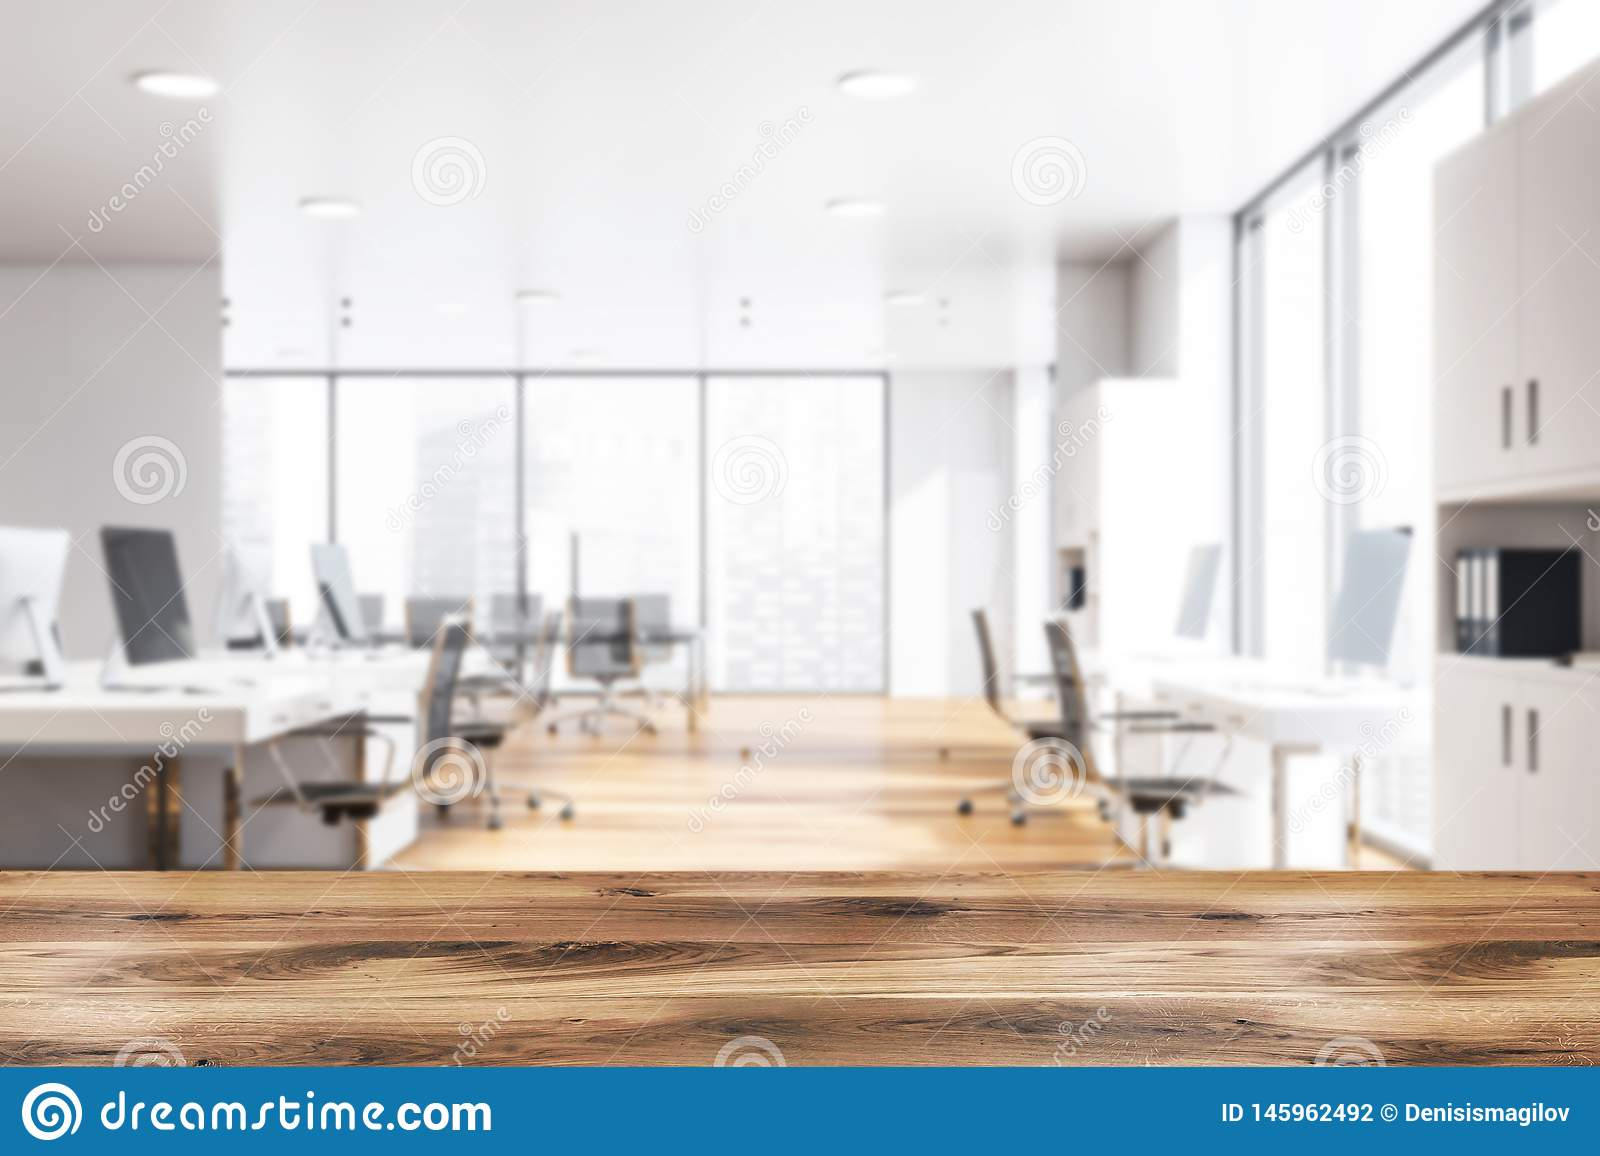 White Open Space Office Interior Meeting Room Blur Stock Illustration Illustration Of High Background 145962492